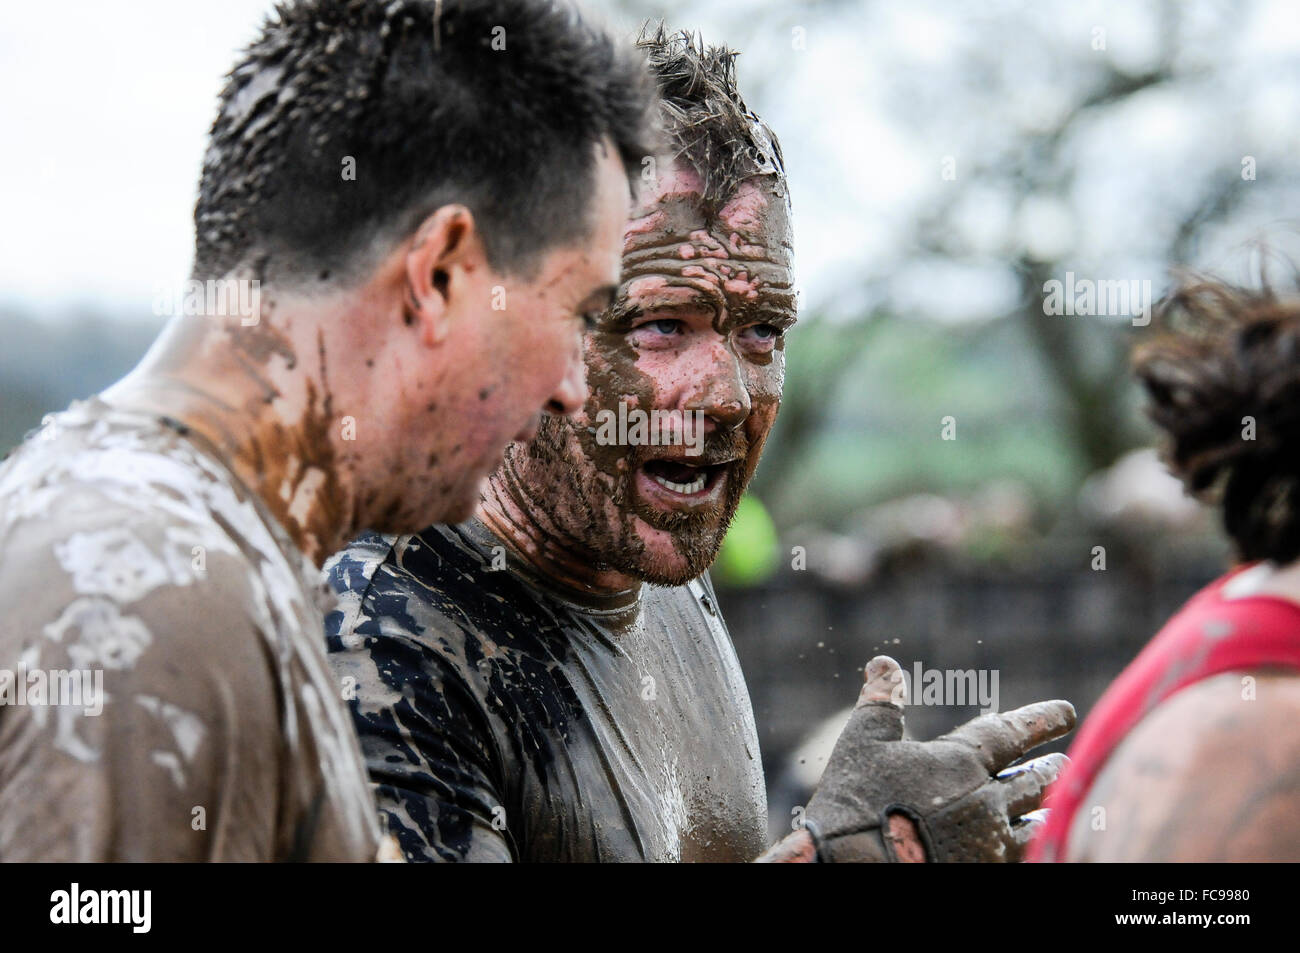 Muddy runners at obstacle course race, UK - Stock Image